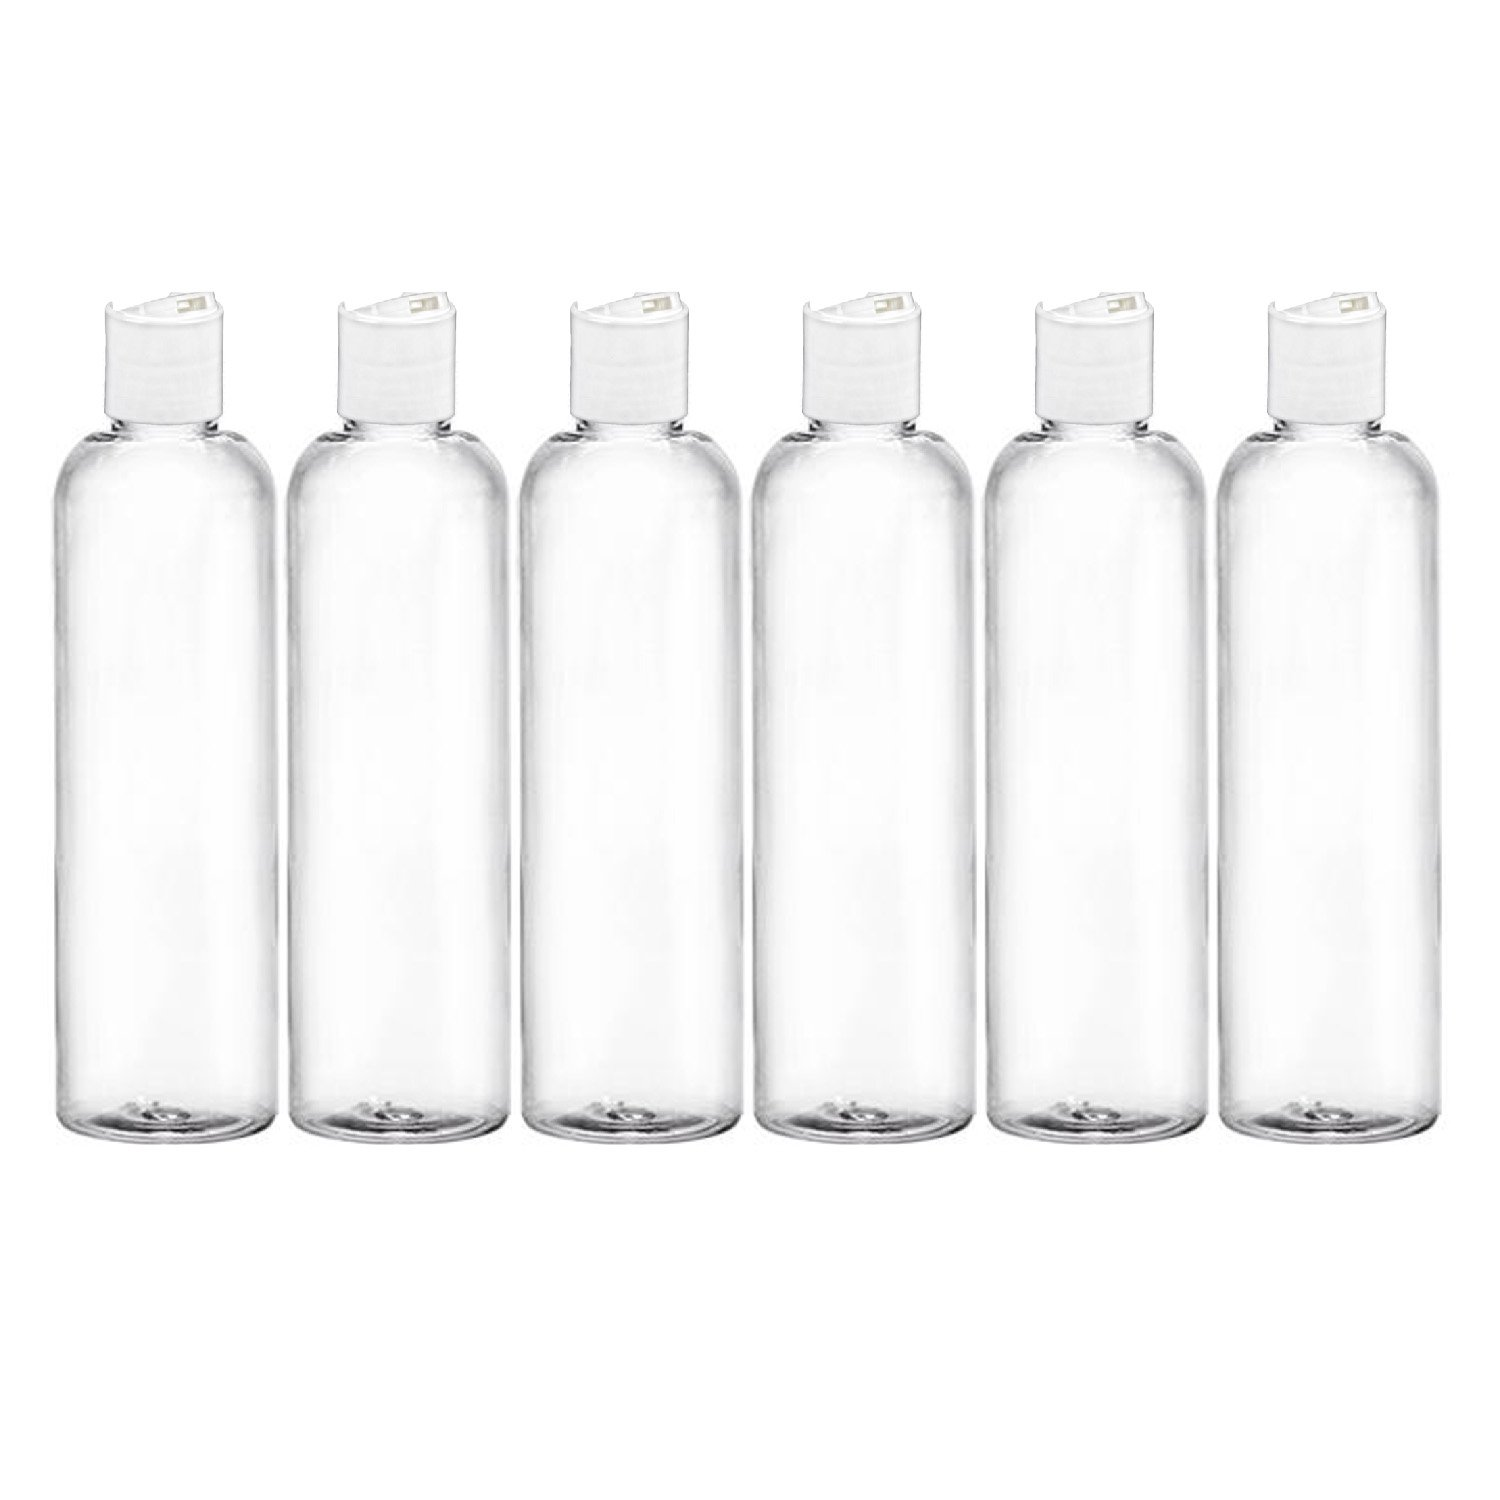 b0571d068b52 Details about 4 Oz Empty Travel Container Squeeze Disc Cap Bottles BPA Free  PET Clear Pack-6